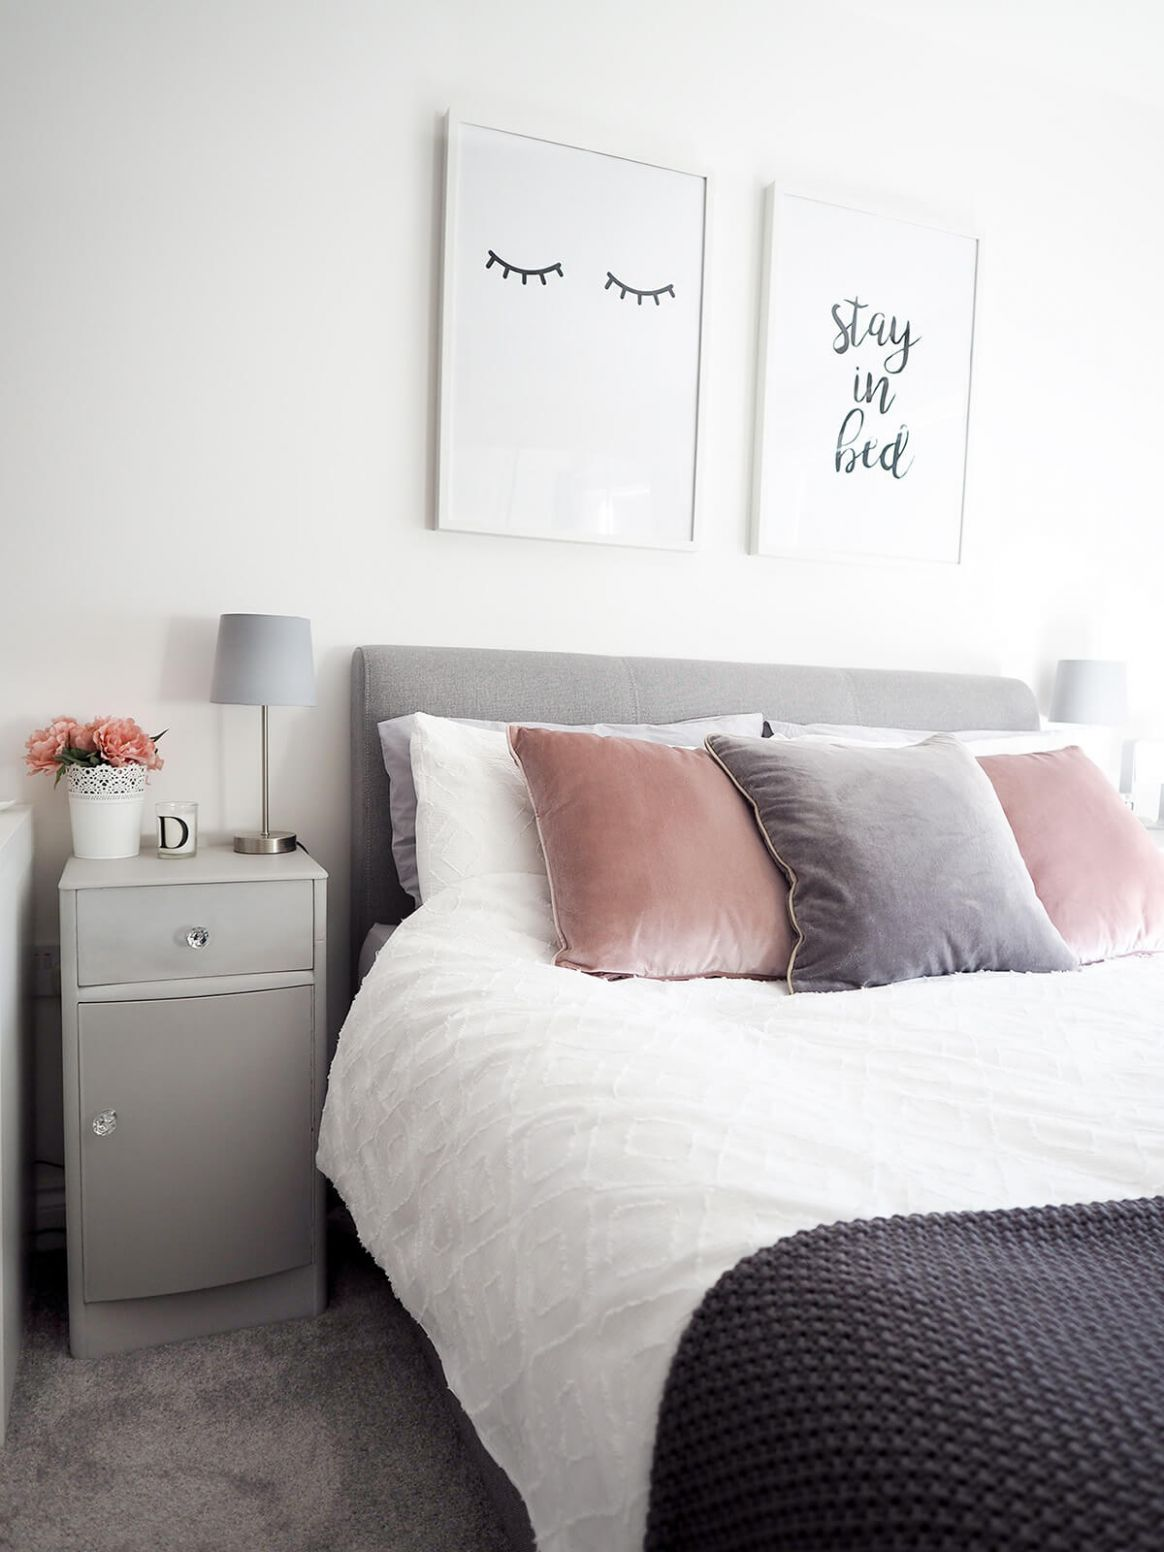 10 Best Trendy Bedroom Decor and Design Ideas for 10 - bedroom ideas next